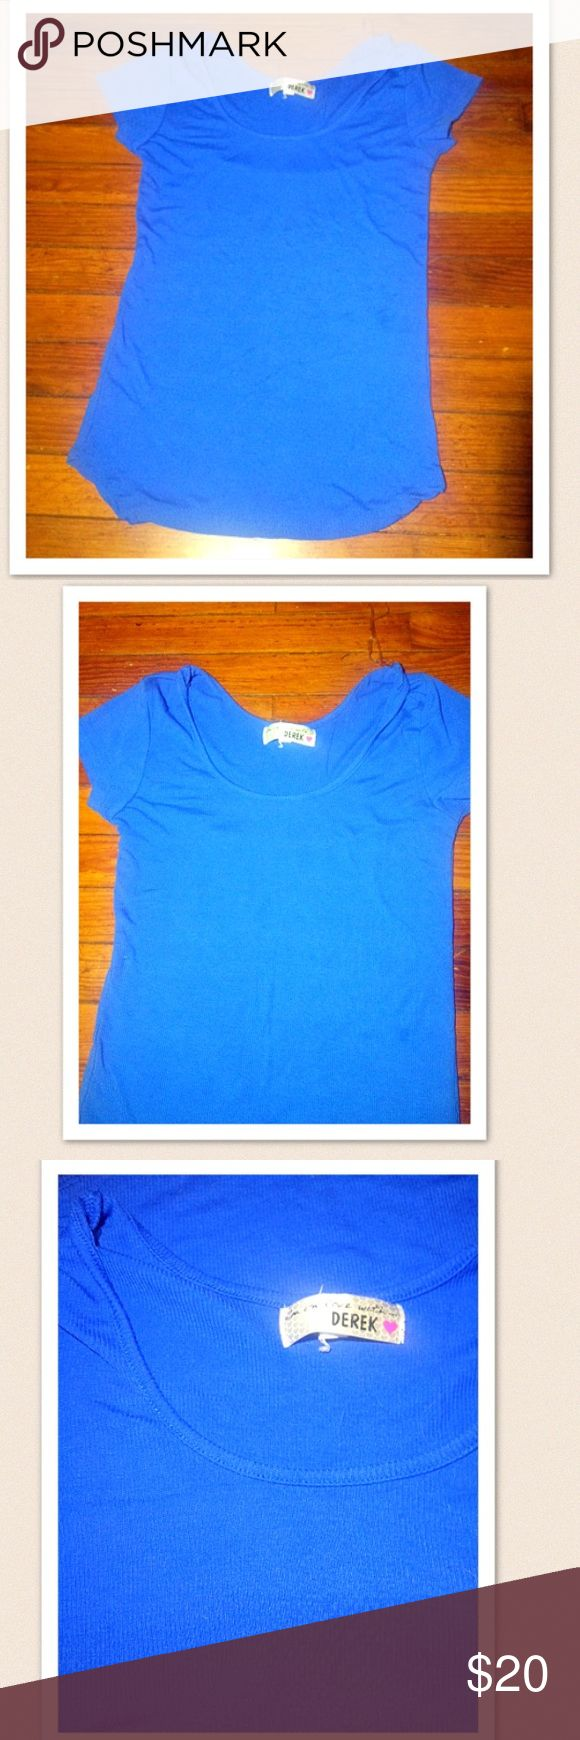 🎉💥BUY 1 GET 1 FREE Size Medium Blue Casual top DEREK HEART Blue Scoop Neck women's top size medium super comfortable ! Smoke free stain free excellent condition Christmas gift Derek Heart Tops Tees - Short Sleeve